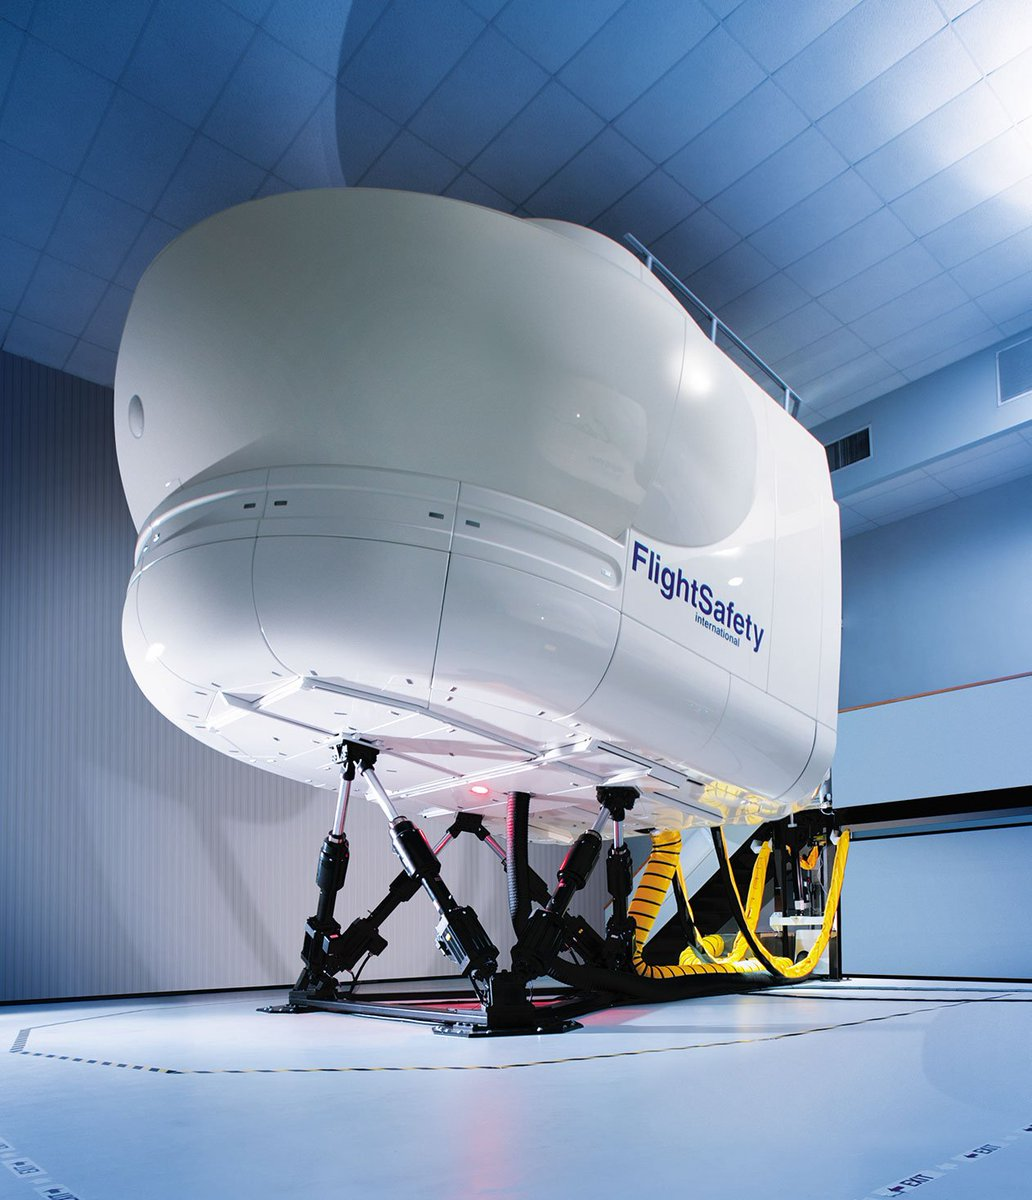 We are expanding our #ATP-CTP training program - now provided using sims for corp. aircraft.  http:// bit.ly/2y3jmNJ  &nbsp;   #FSINews #bizav<br>http://pic.twitter.com/7qgyAXB1mH